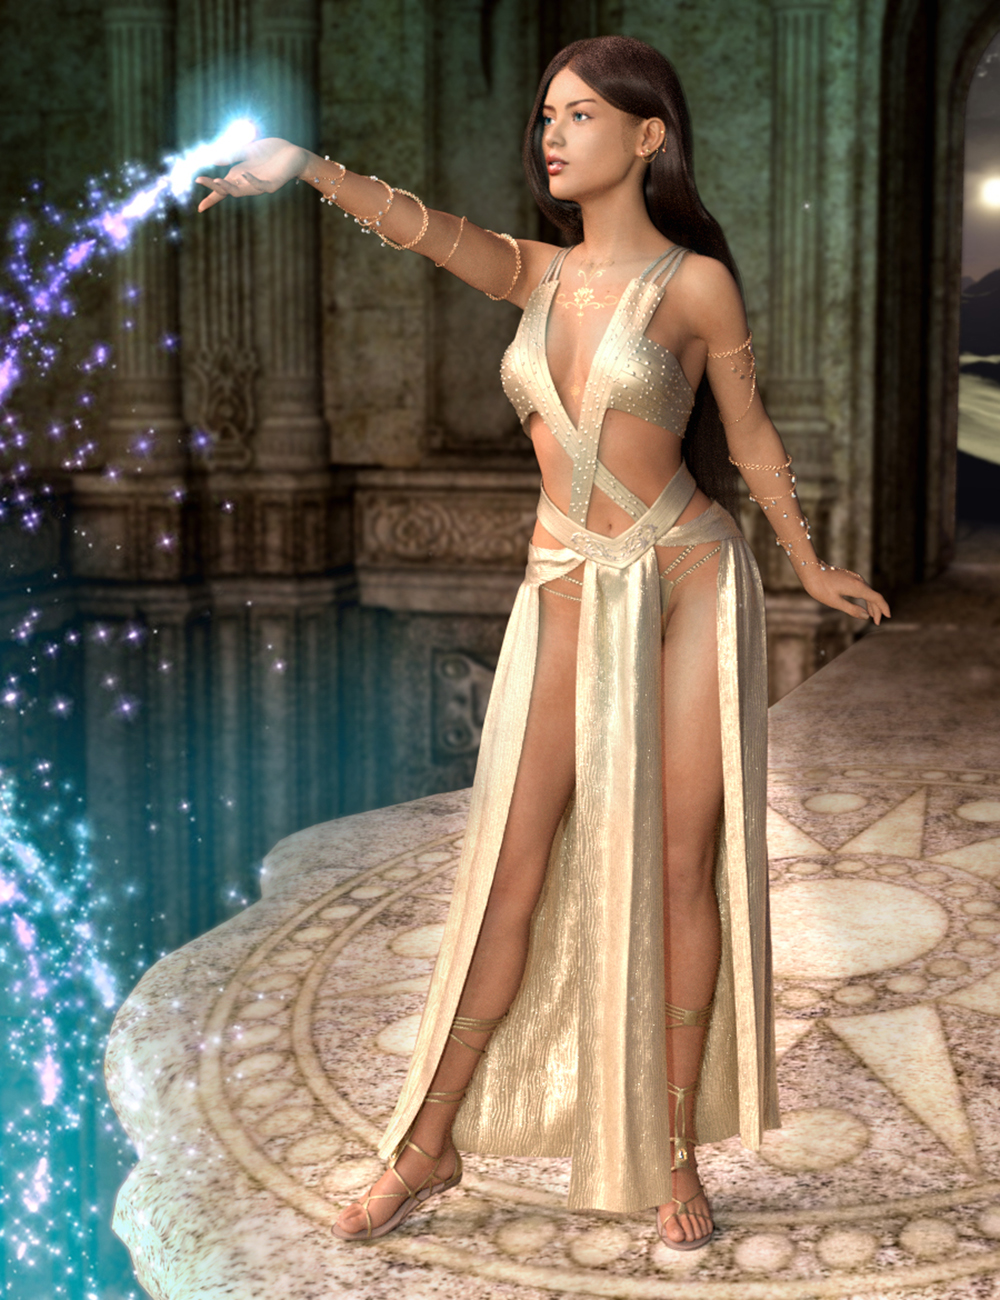 dForce Priestess of Light Outift for Genesis 8 Female(s) by: Blue Rabbit, 3D Models by Daz 3D